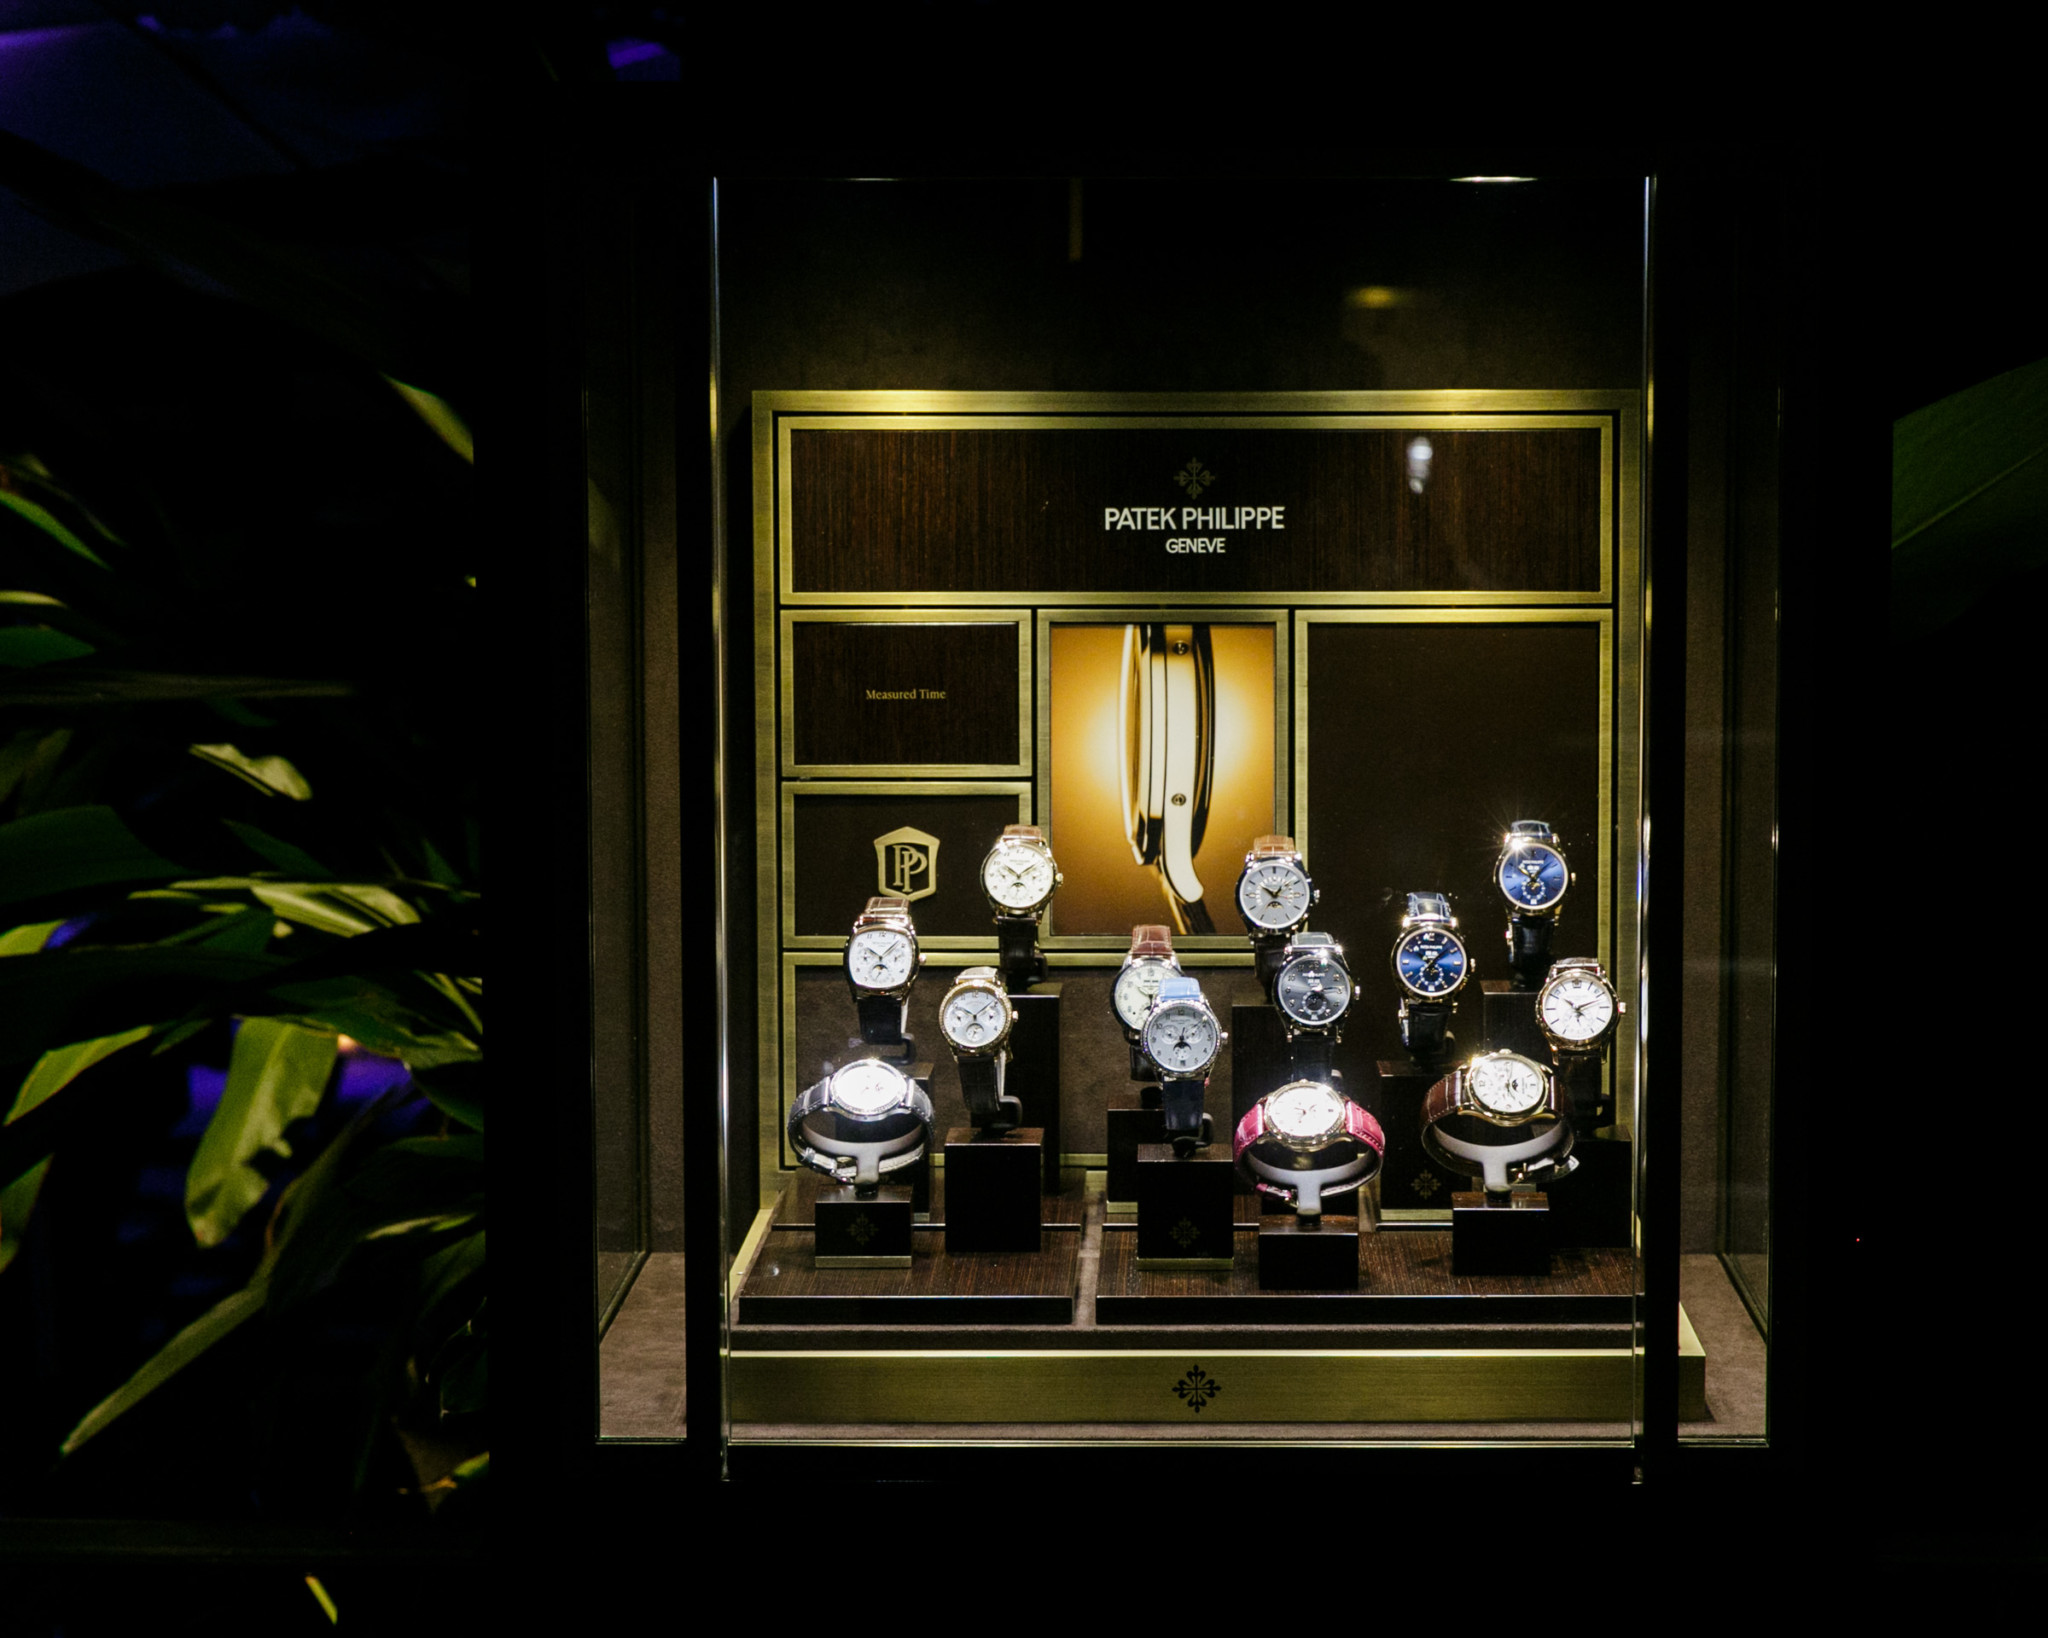 Patek Philippe timepieces showcased at the event